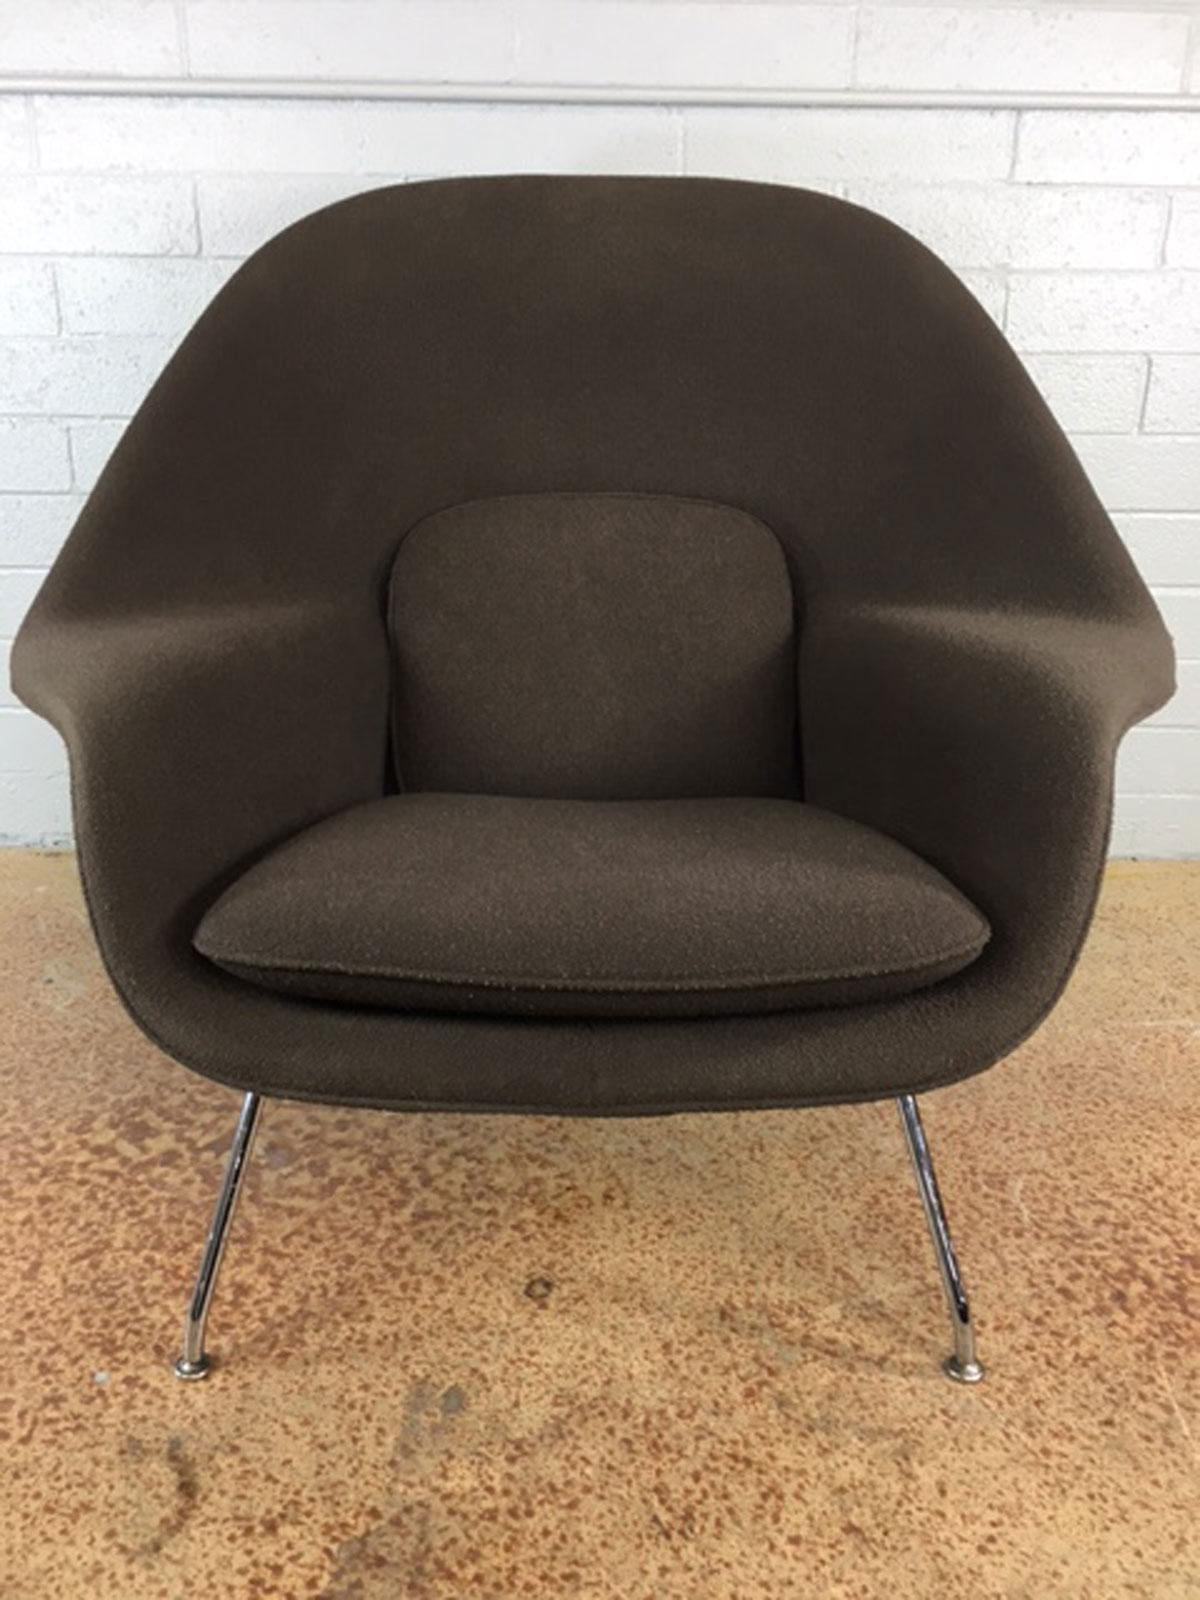 Eero Saarinen Womb Chair by Knoll Two Available Chairish